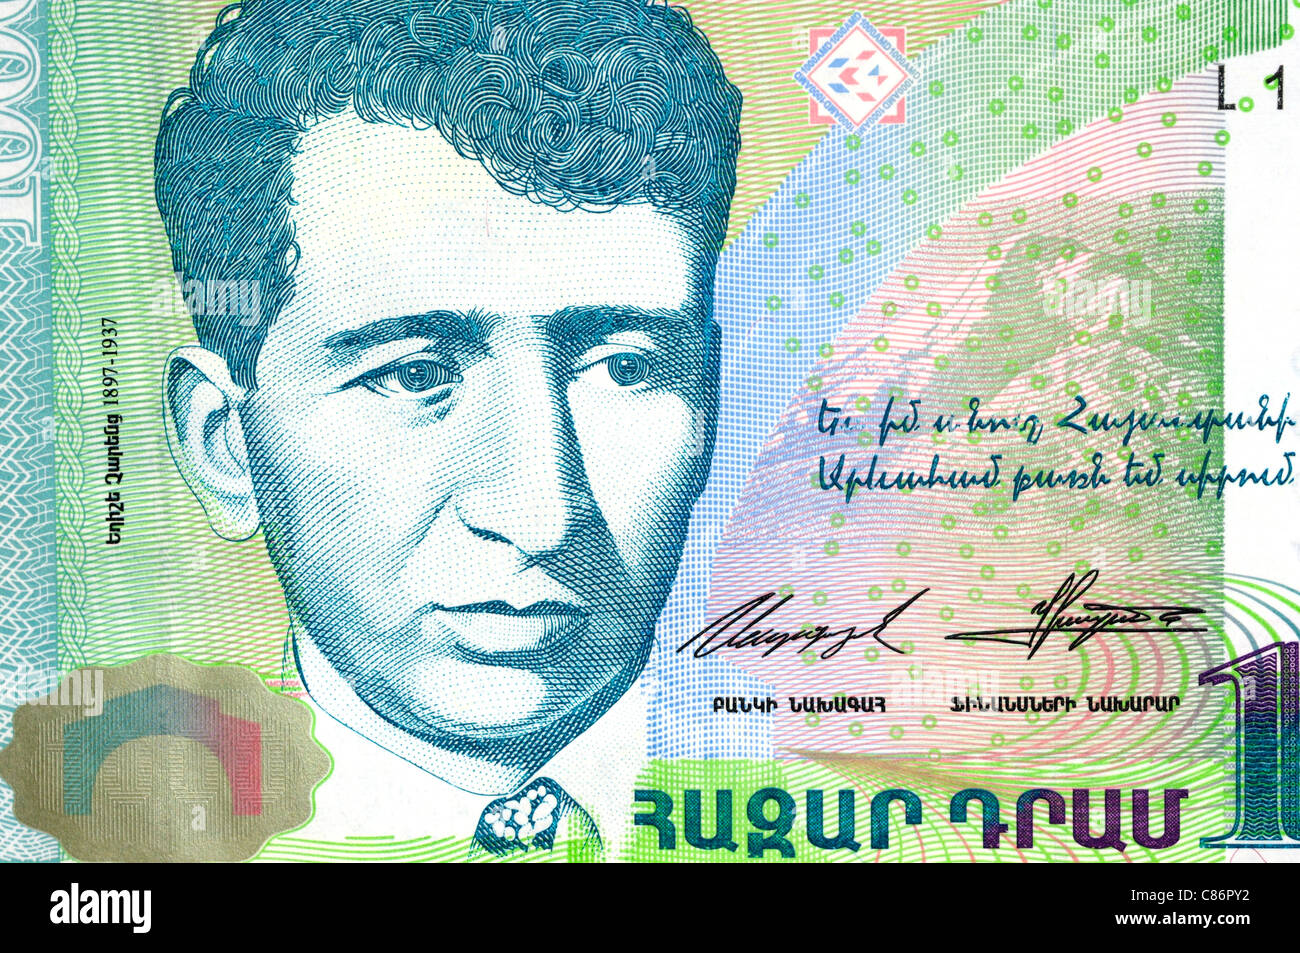 Armenia 1000 One Thousand Dram Banknote. - Stock Image